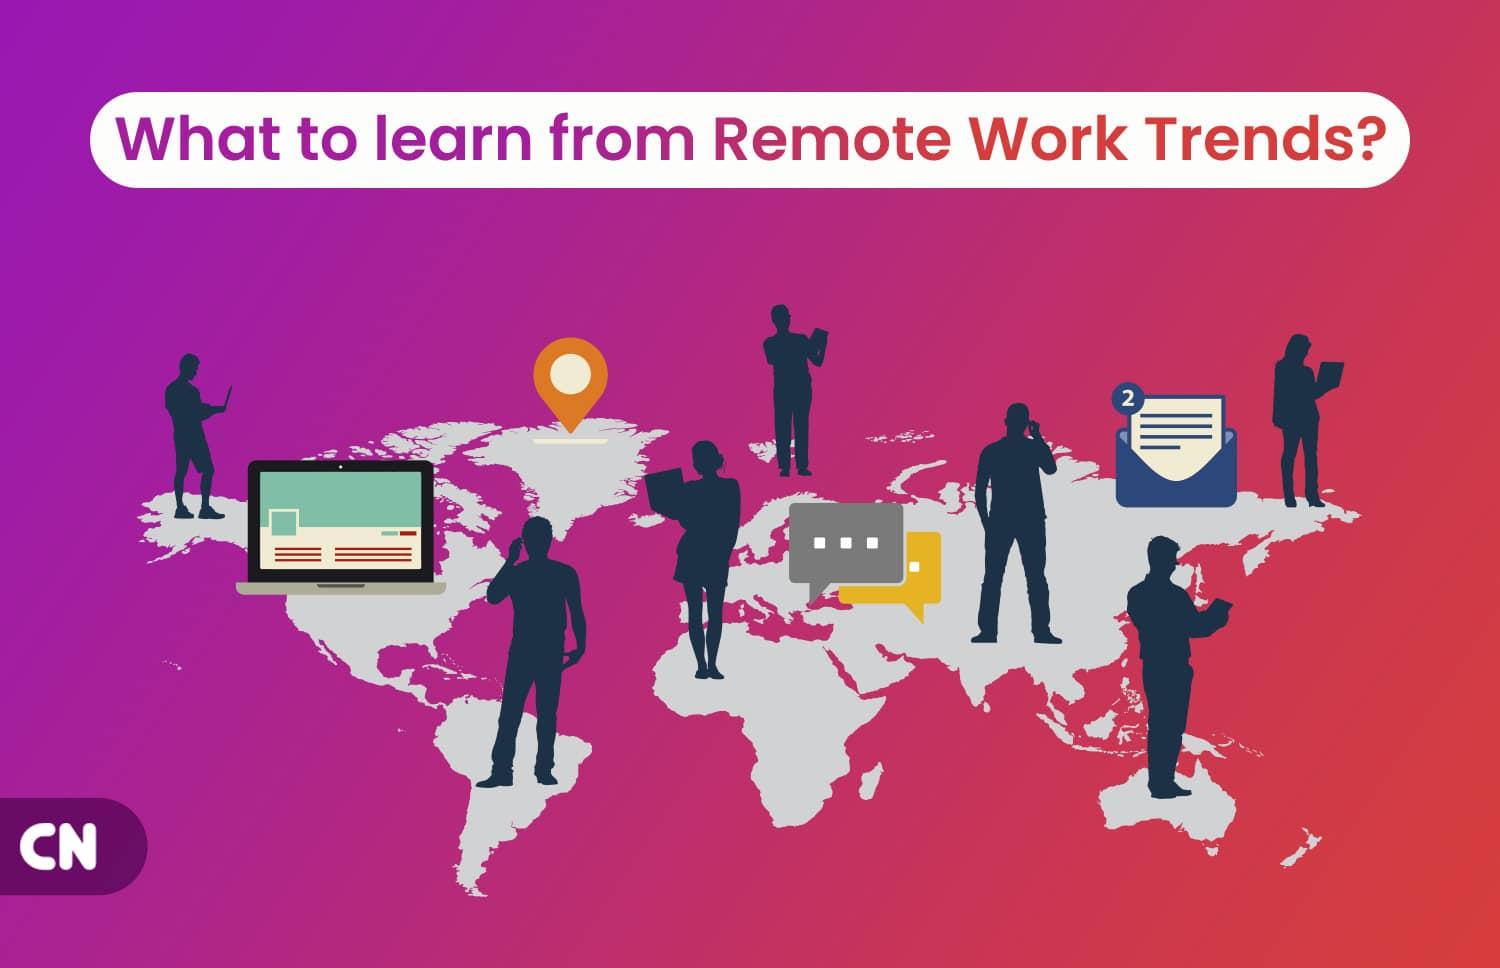 What to learn from Remote Work Trends